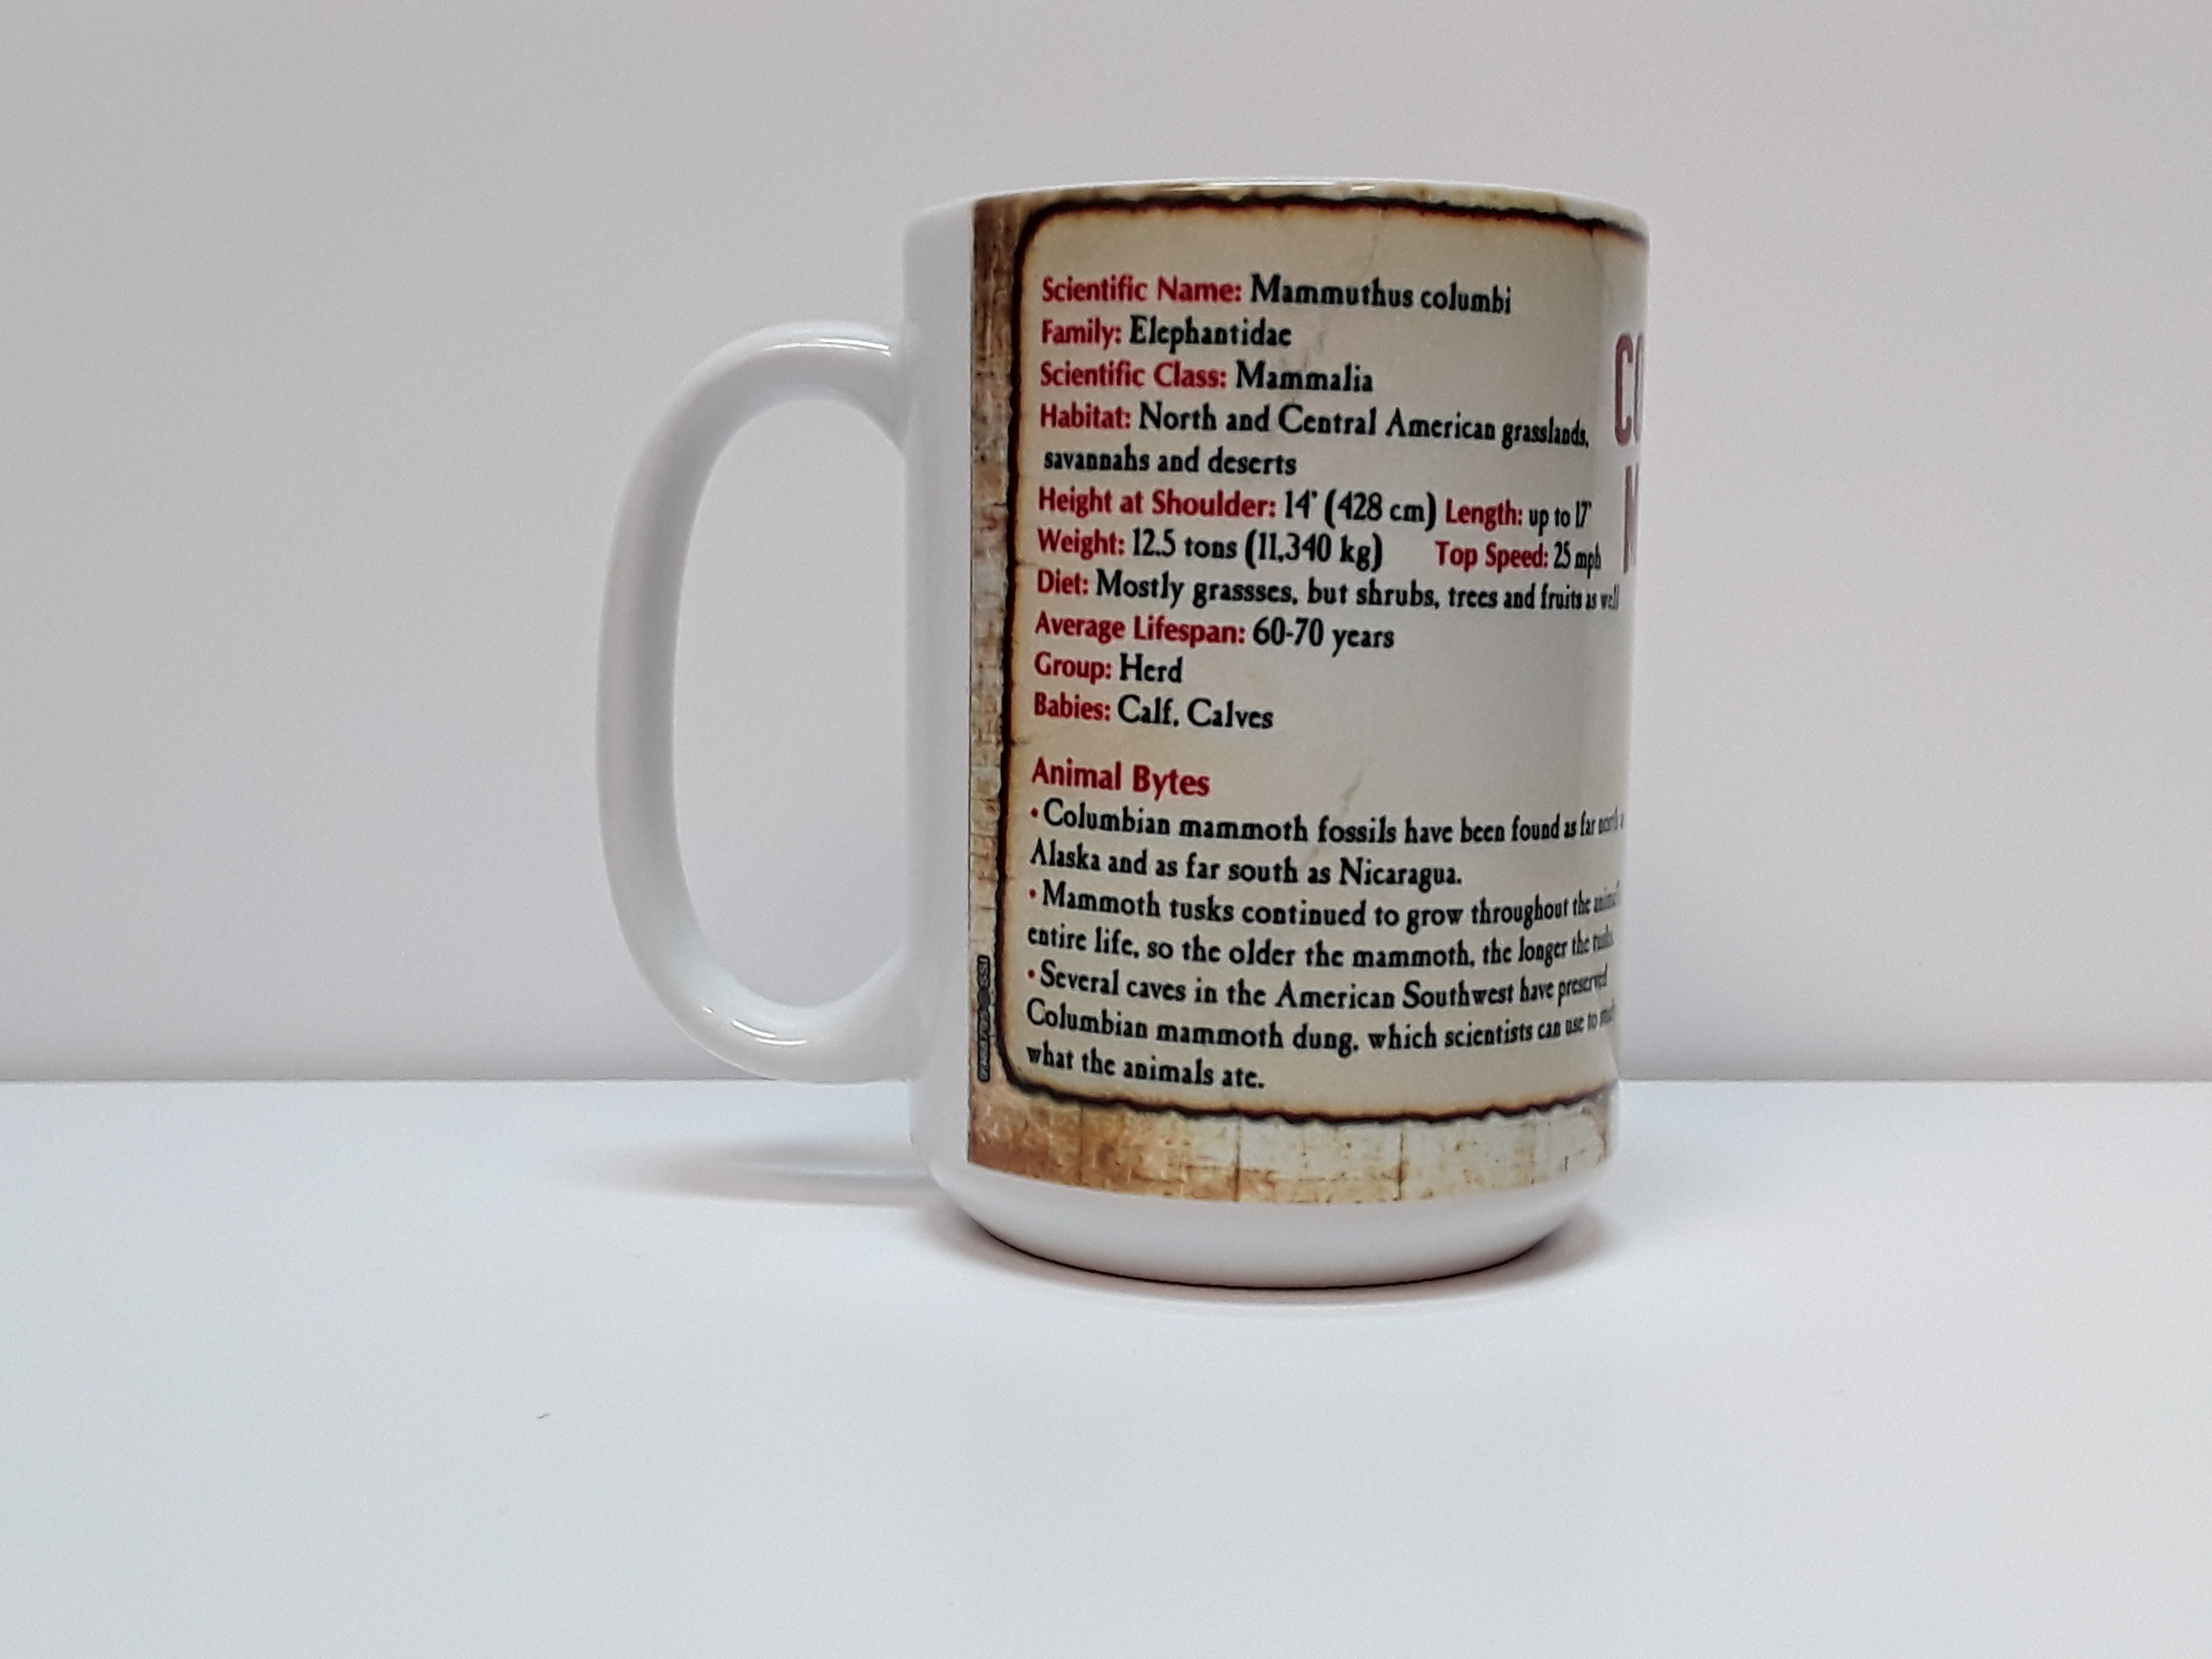 Columbian Mammoth Facts Mug